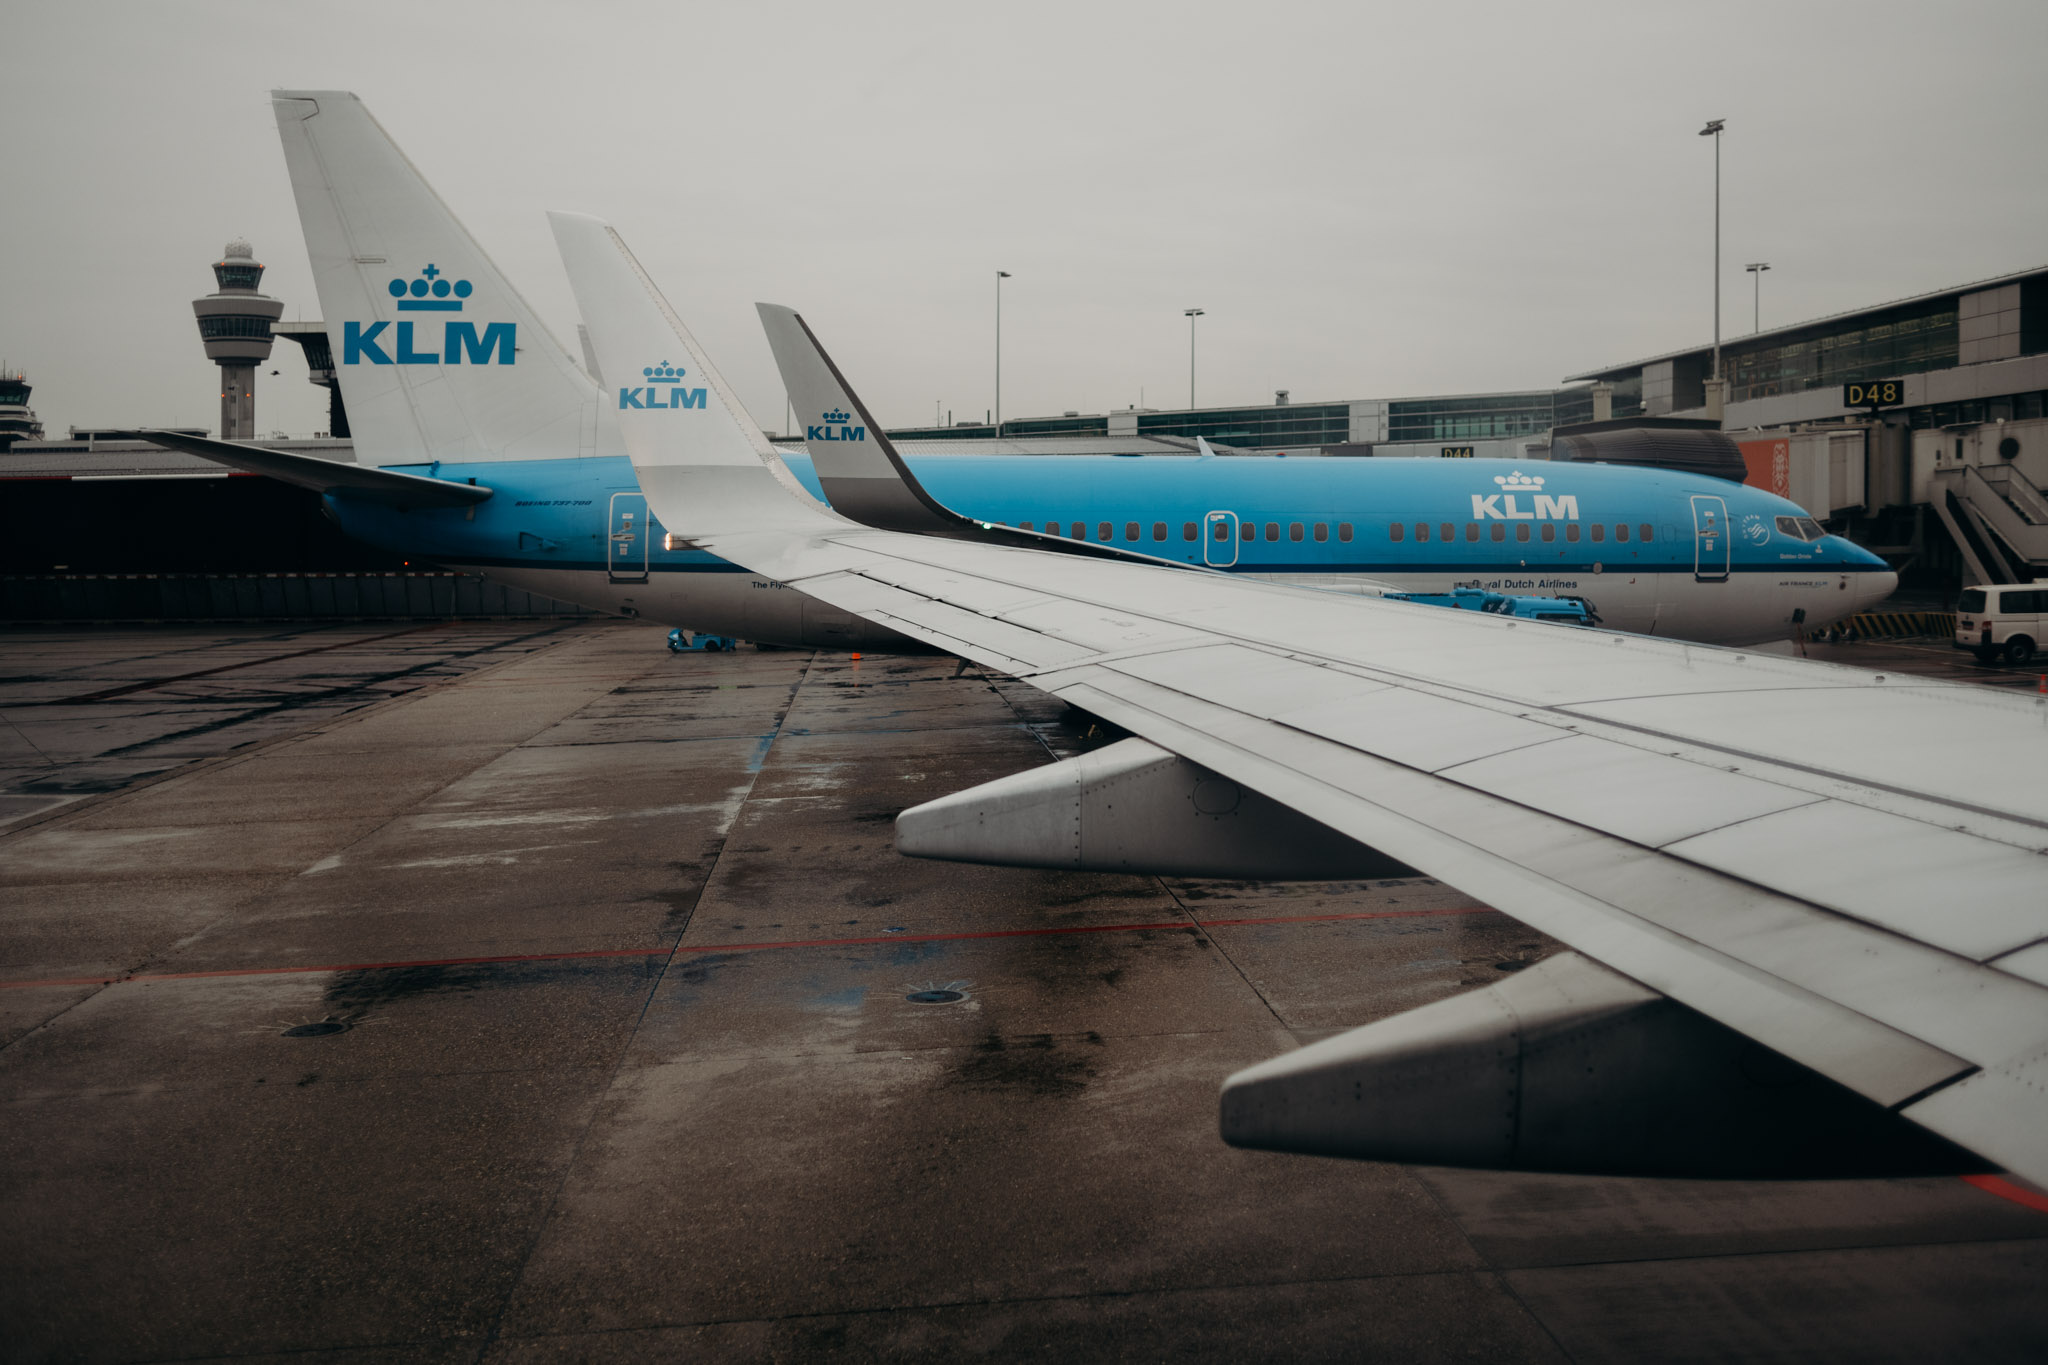 Now with KLM airlines, Amsterdam airport. Final connection to Vienna.